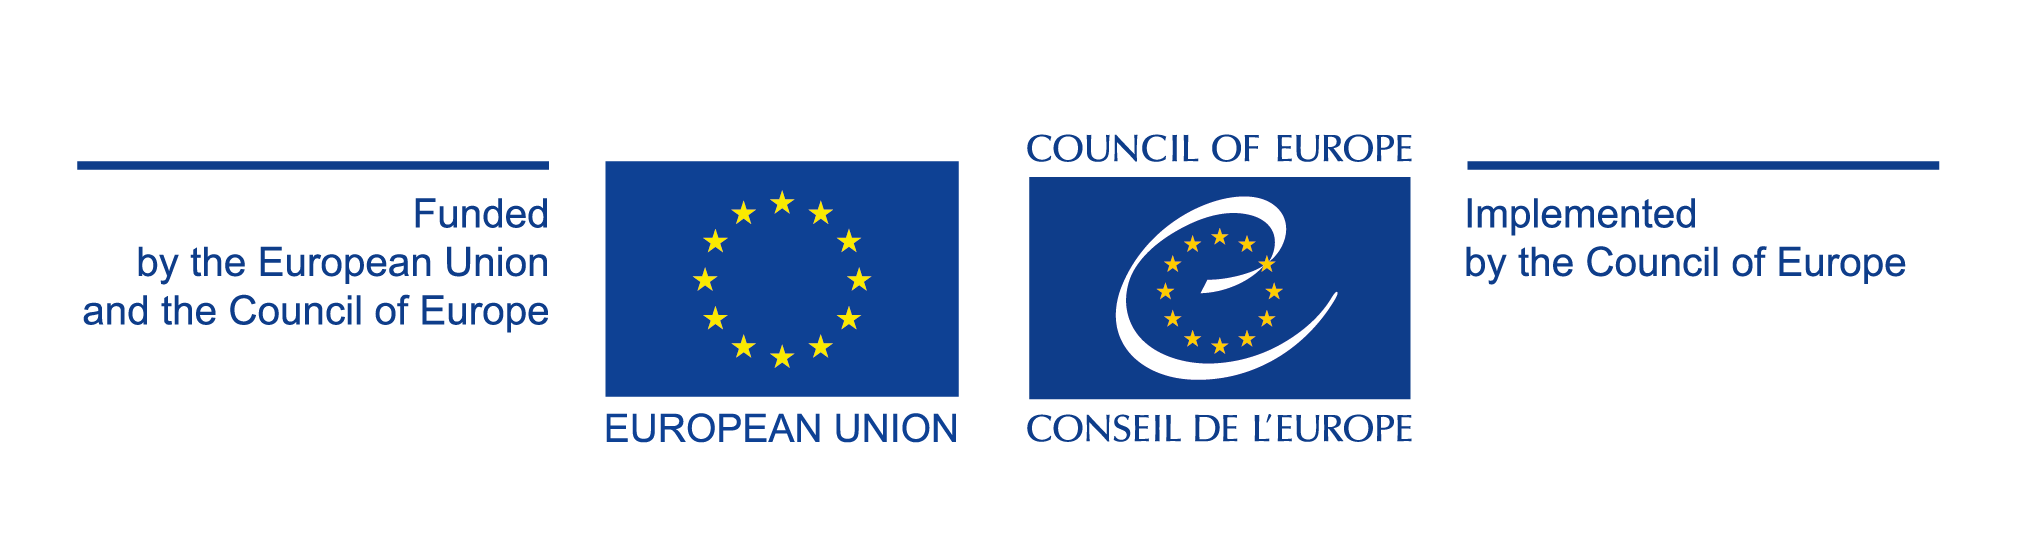 EU and CoE joint logo